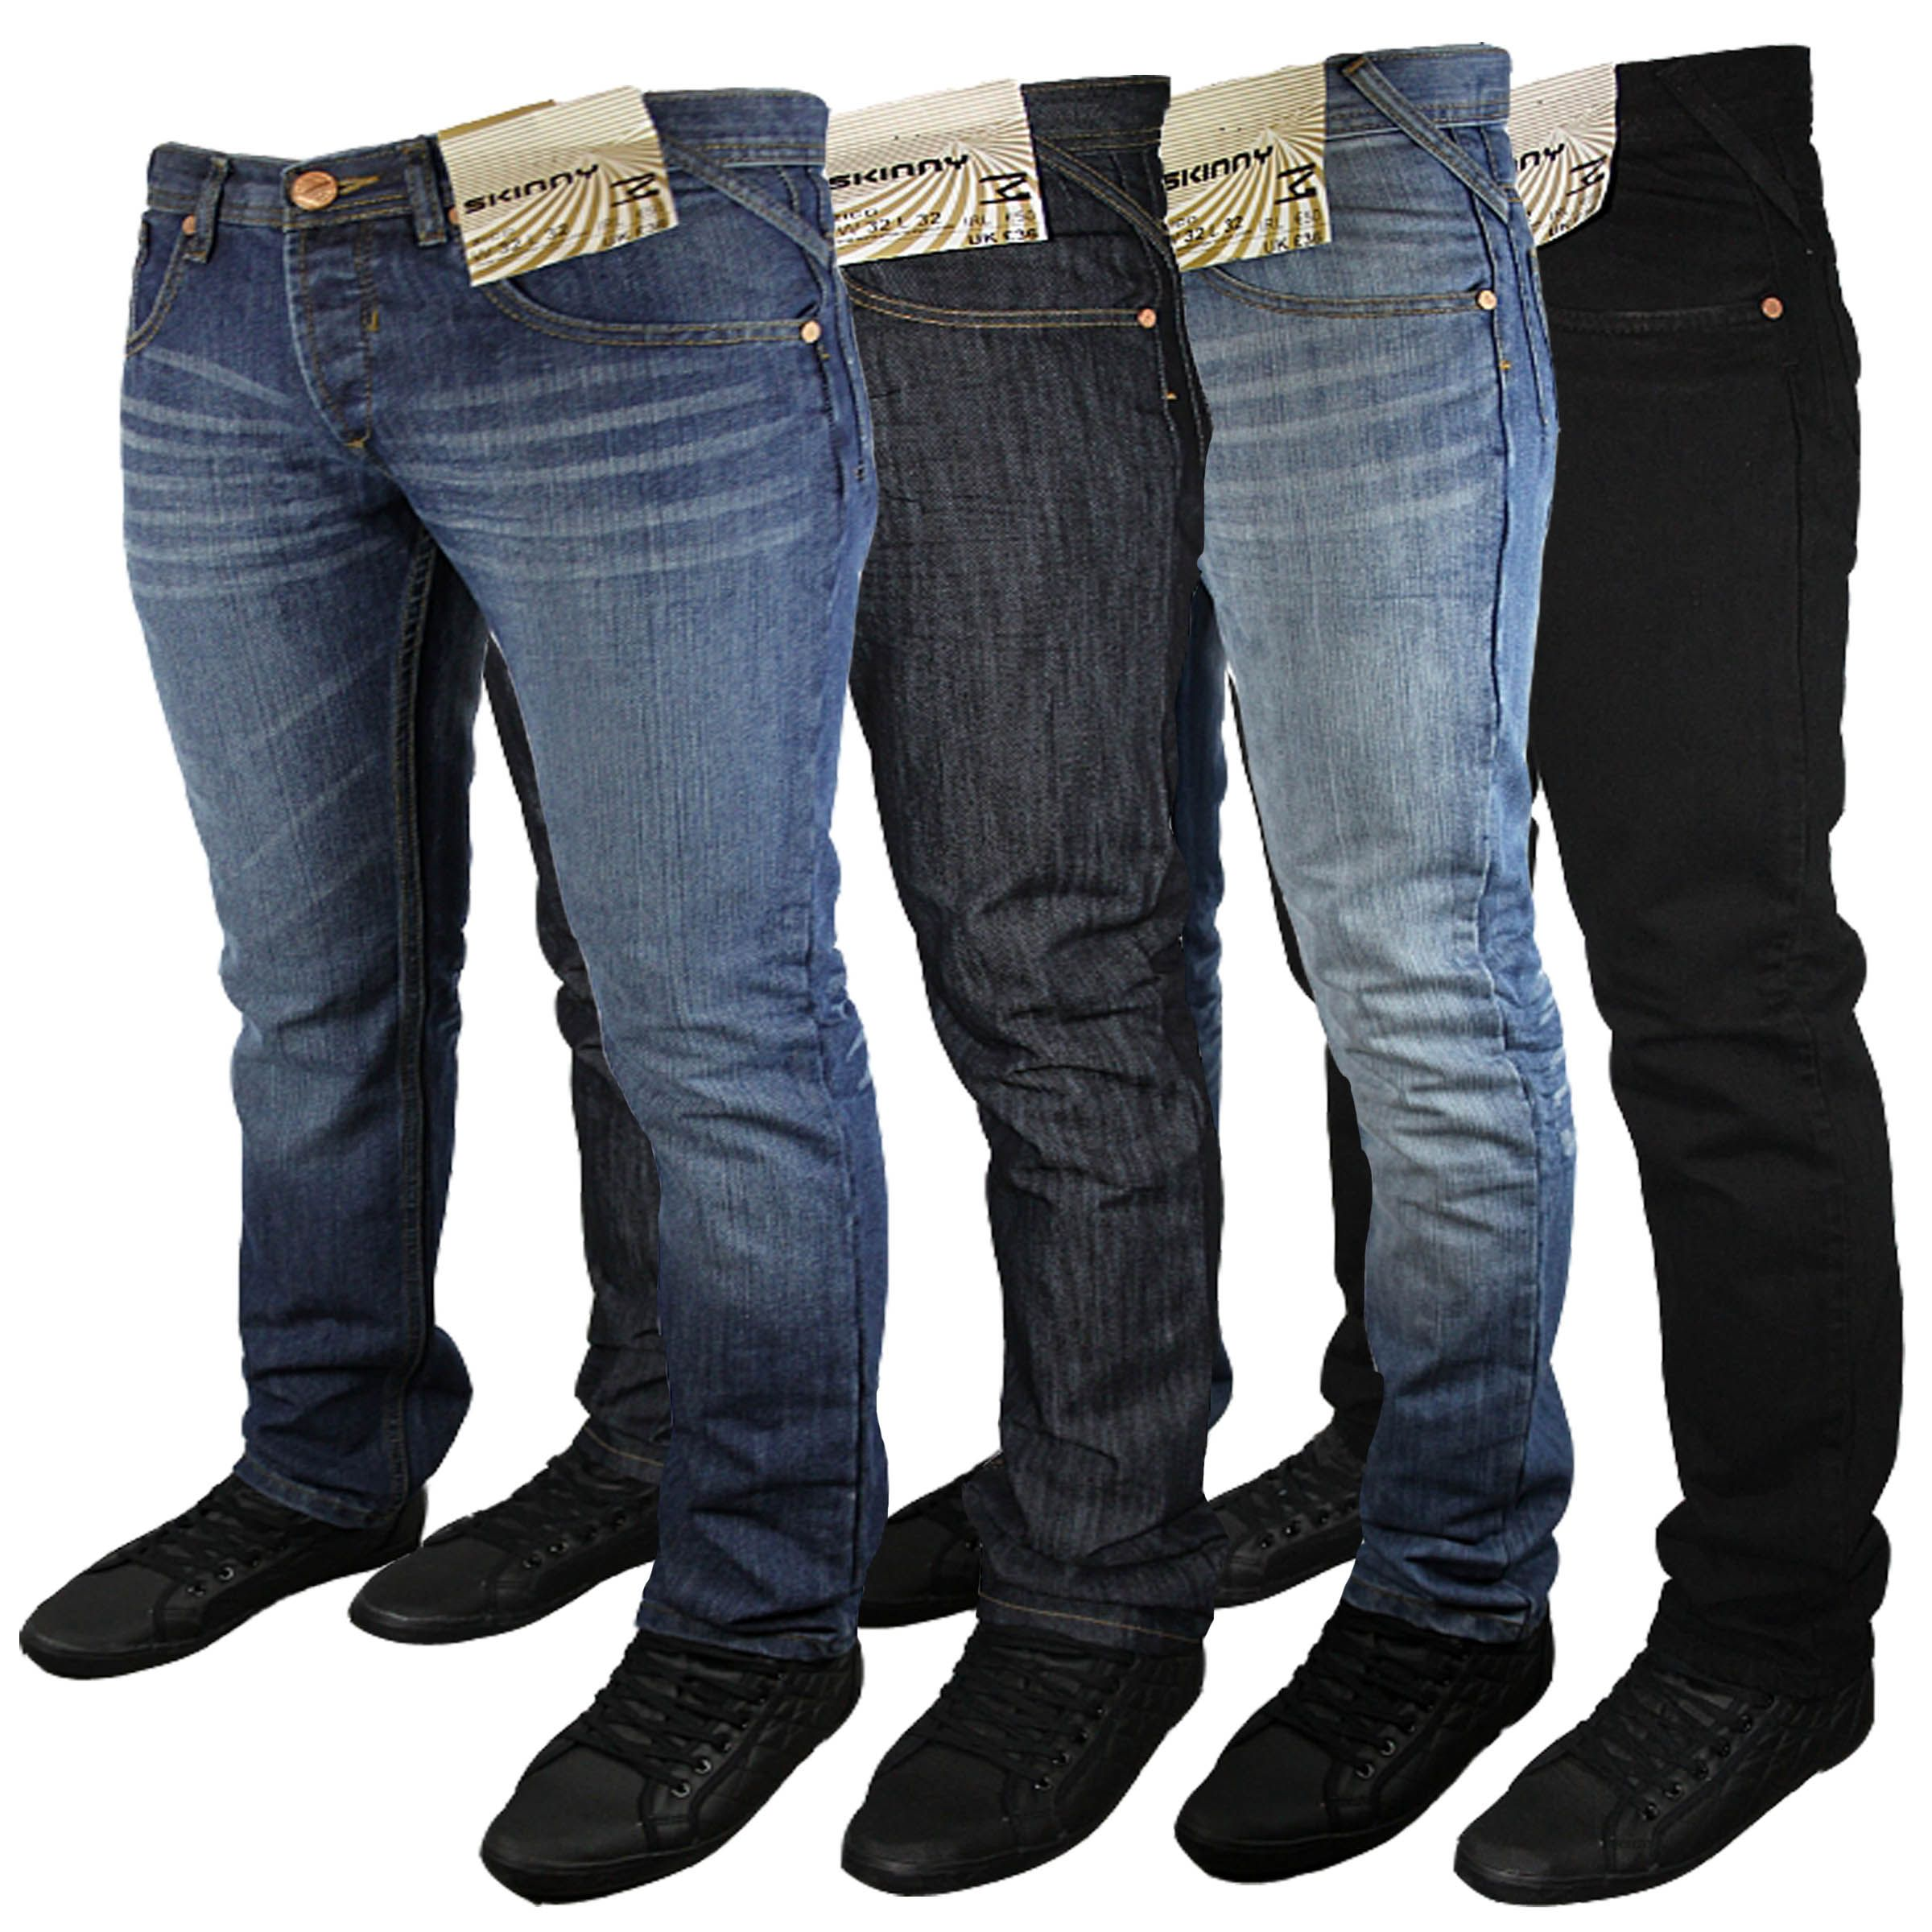 b0eb4b631 Details about Mens Designer Brand Stretch Skinny Slim Fit Denim ...